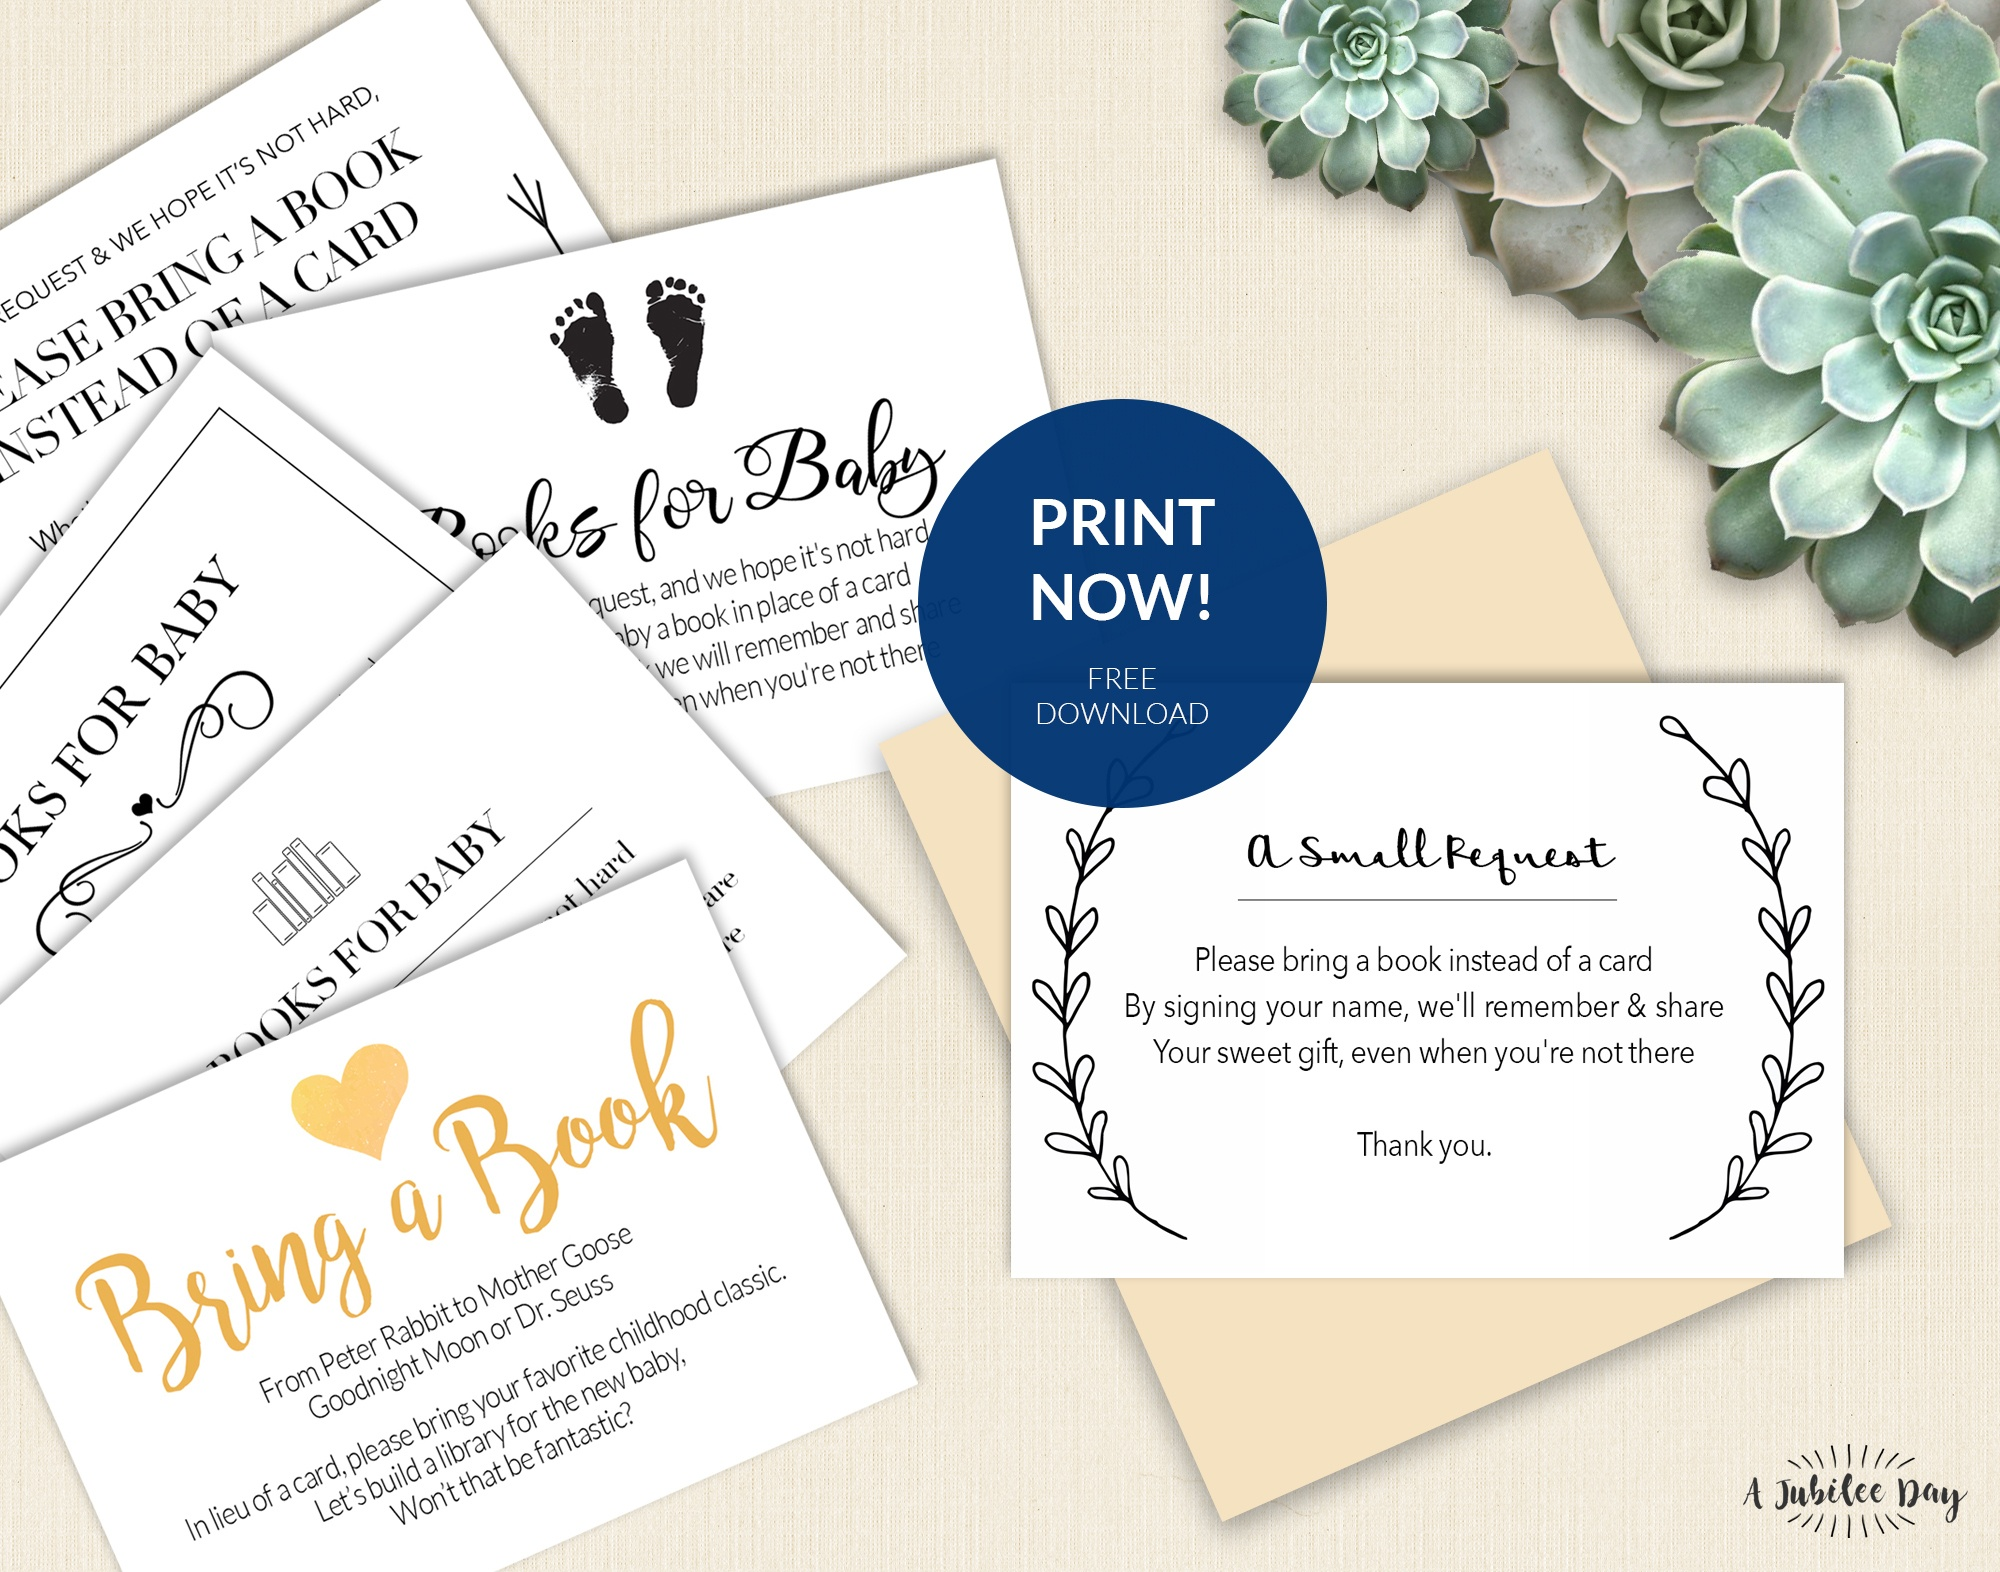 Bring A Book Instead Of Card (Free Printable!) - A Jubilee Day - Free Printable Baby Registry Cards